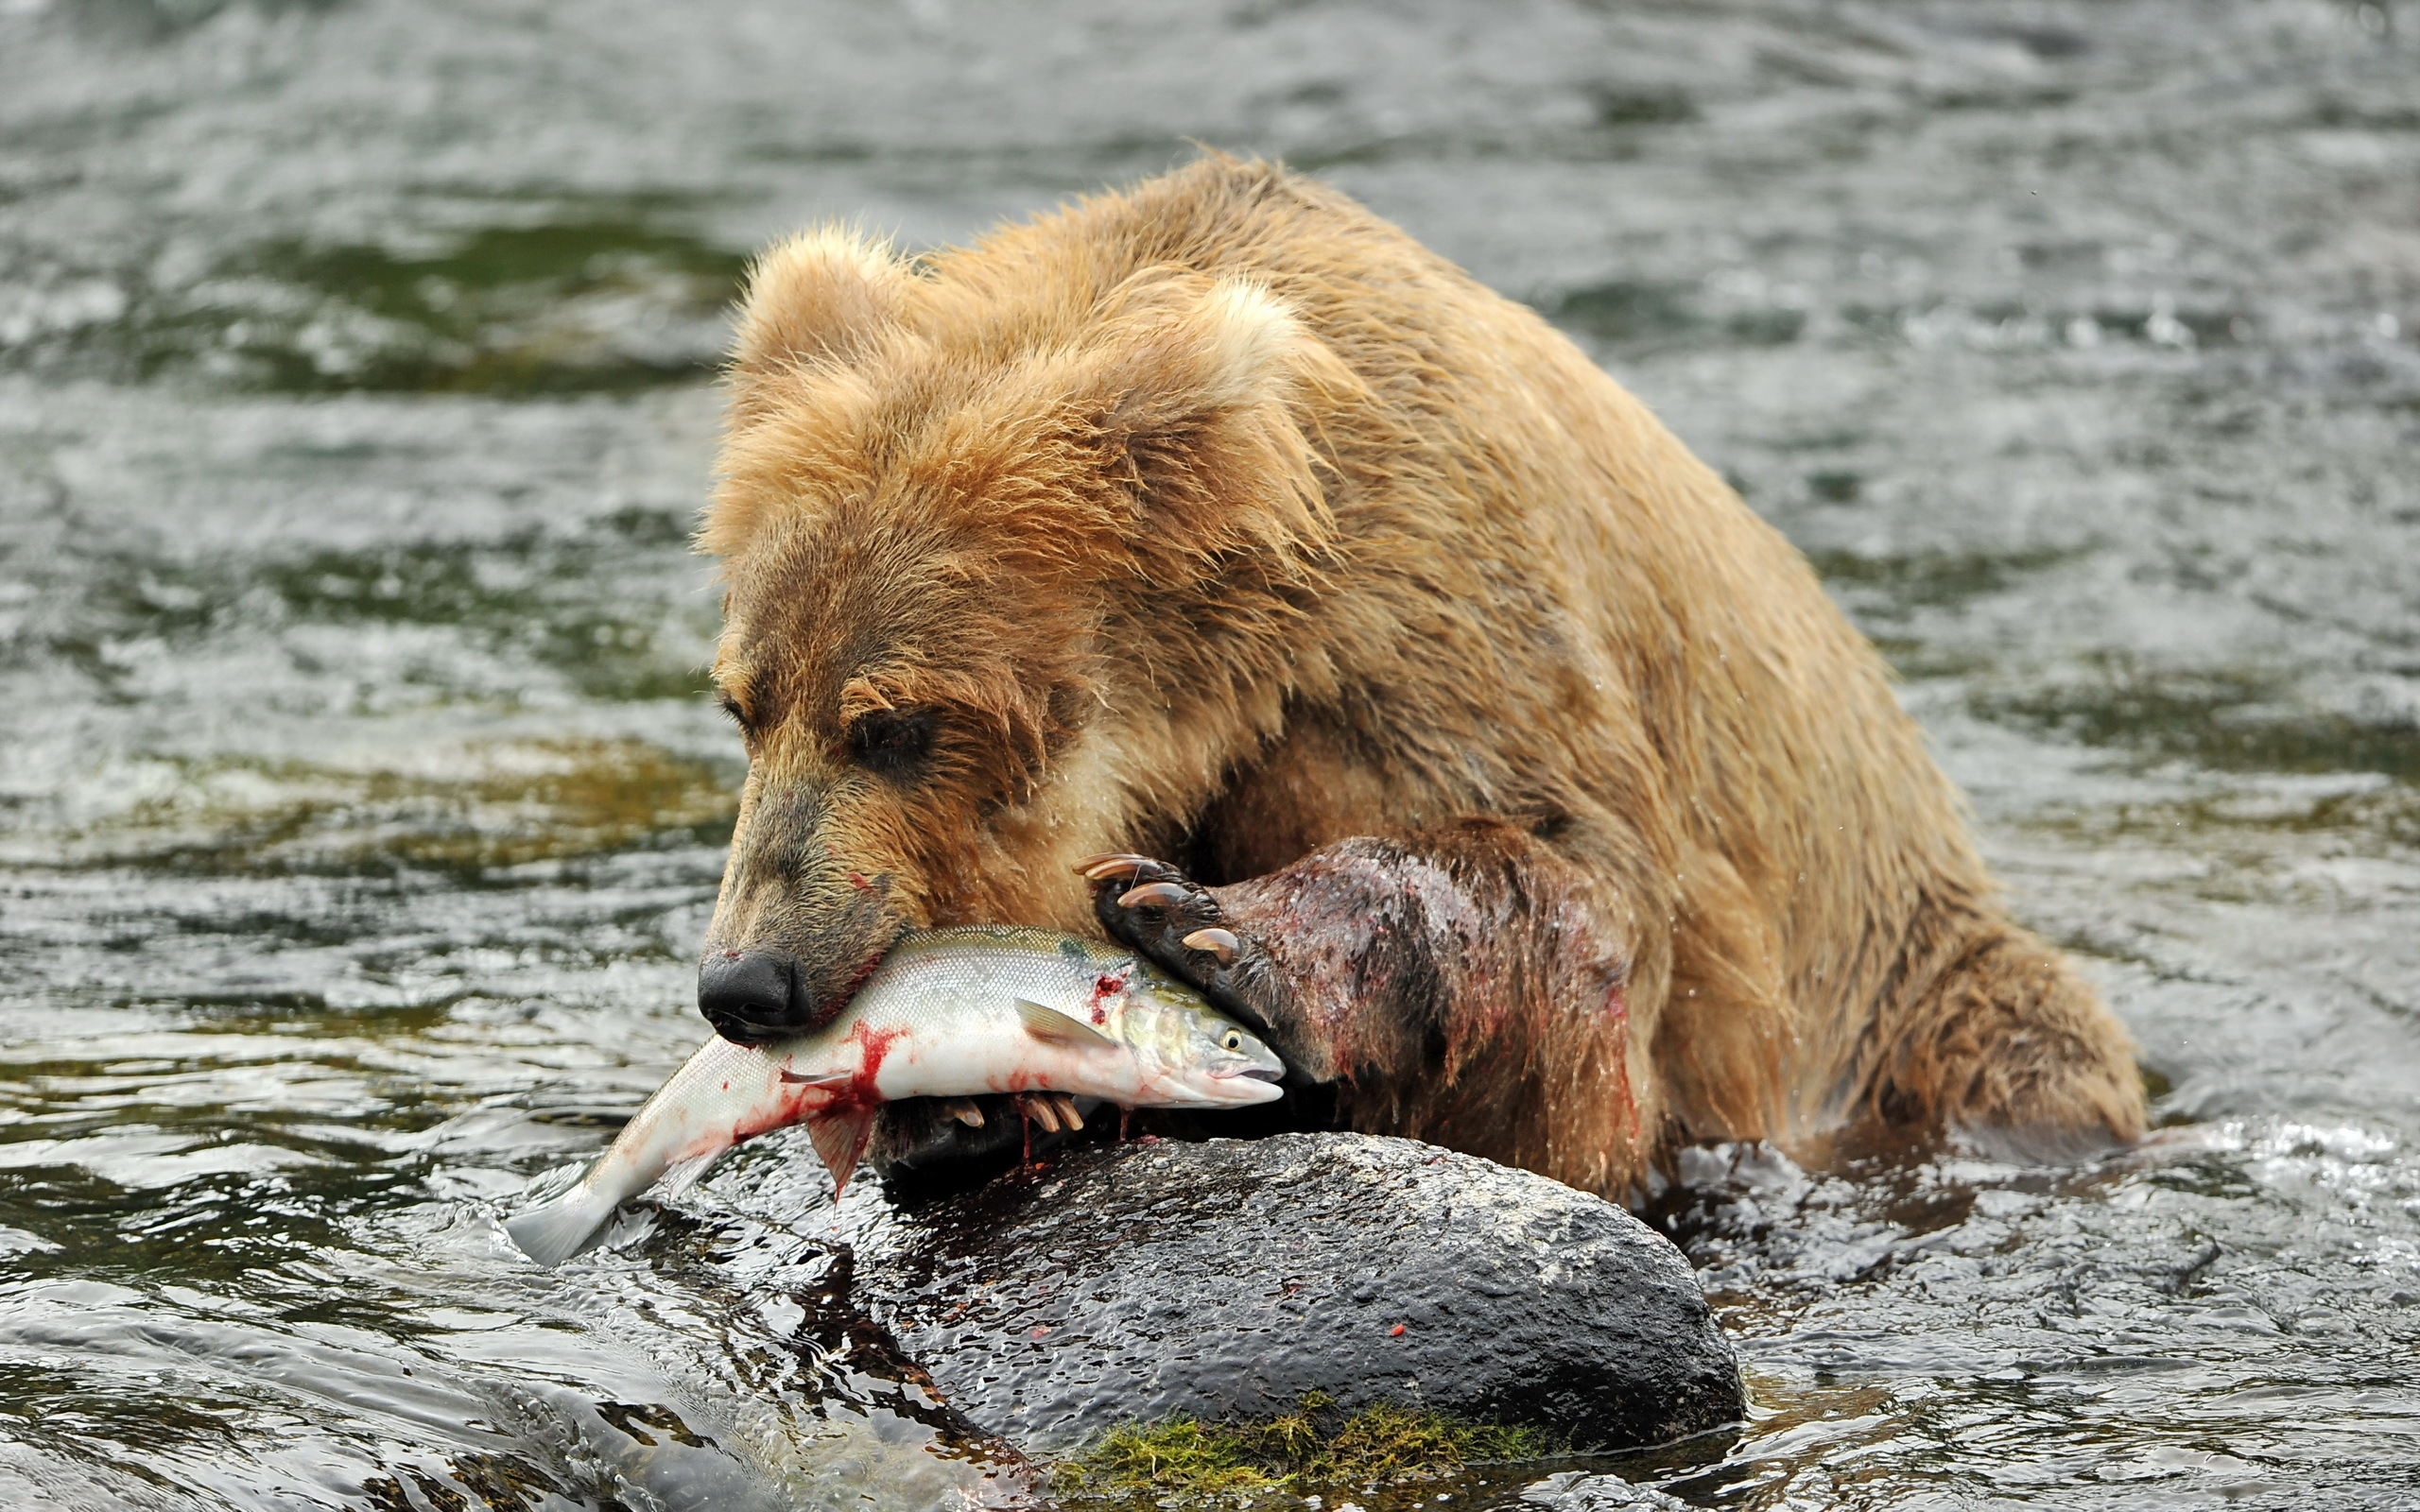 Pictures of bears fishing Fish-ty Cuffs: Stunning pictures show bears brawling over fishing